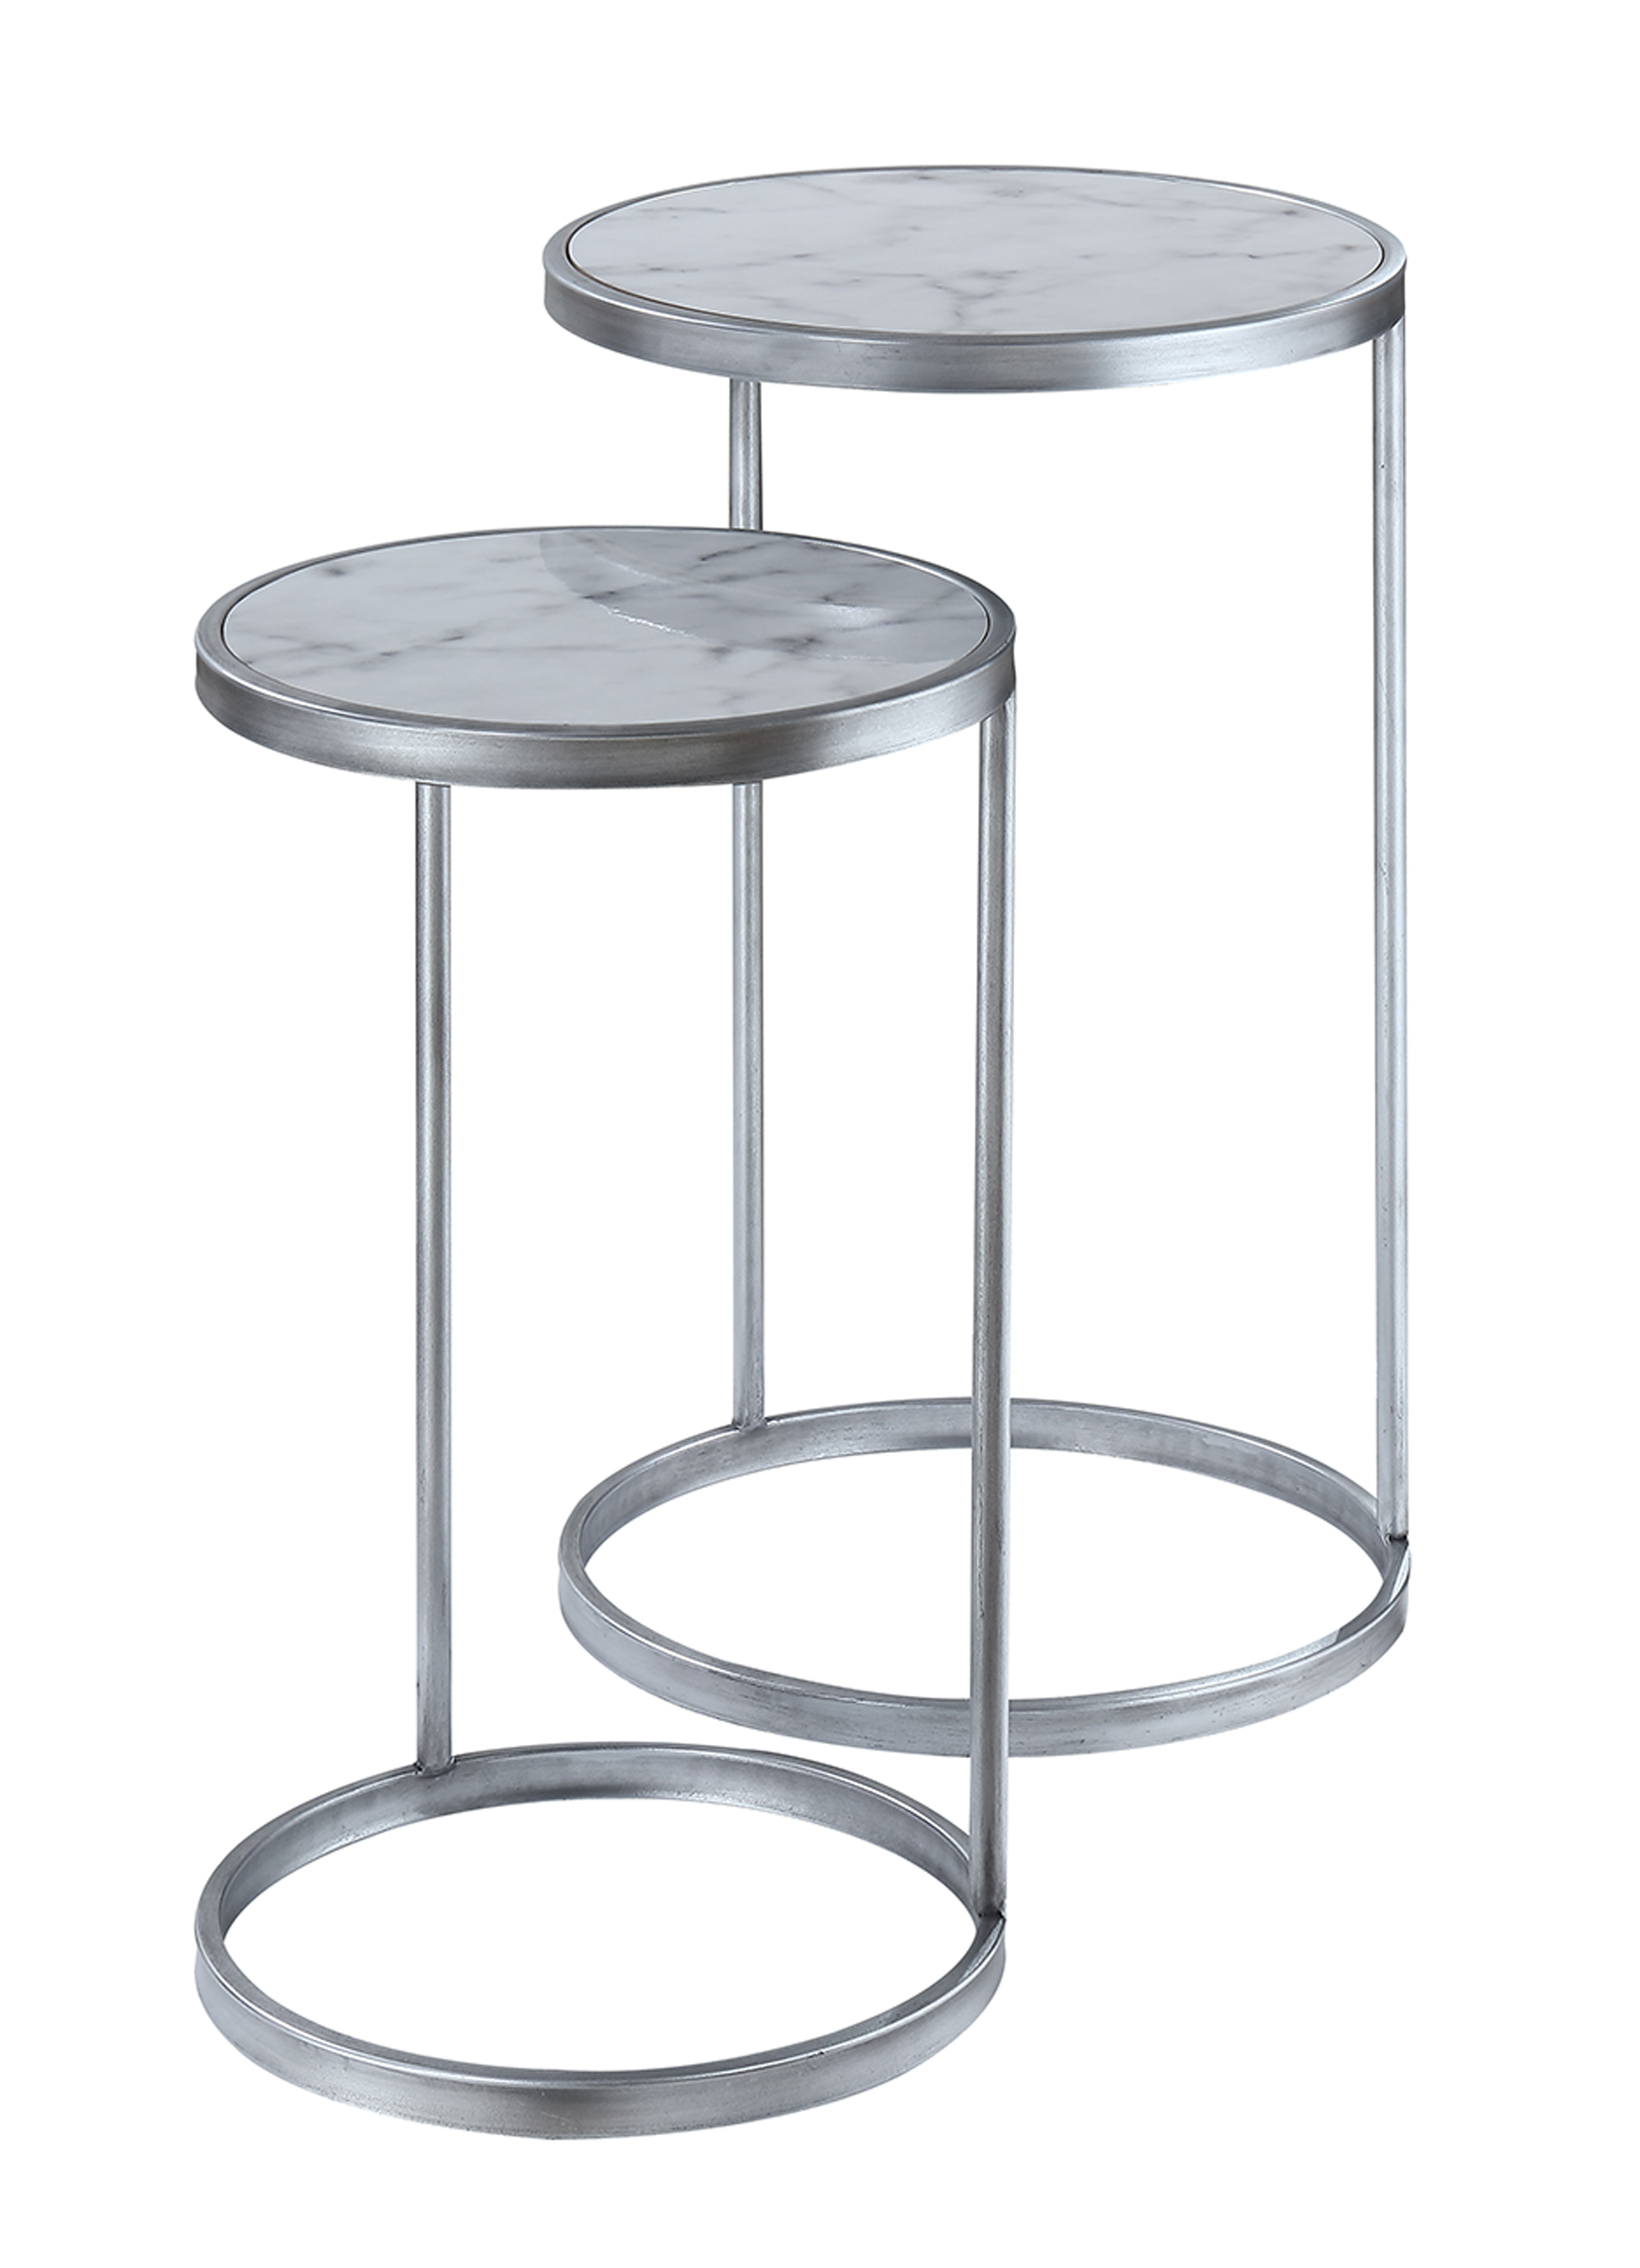 Convenience Concepts 413555S Gold Coast Faux Marble Nesting End Tables Faux Marble & Silver - 25 x 15.5 x 15.5 in.